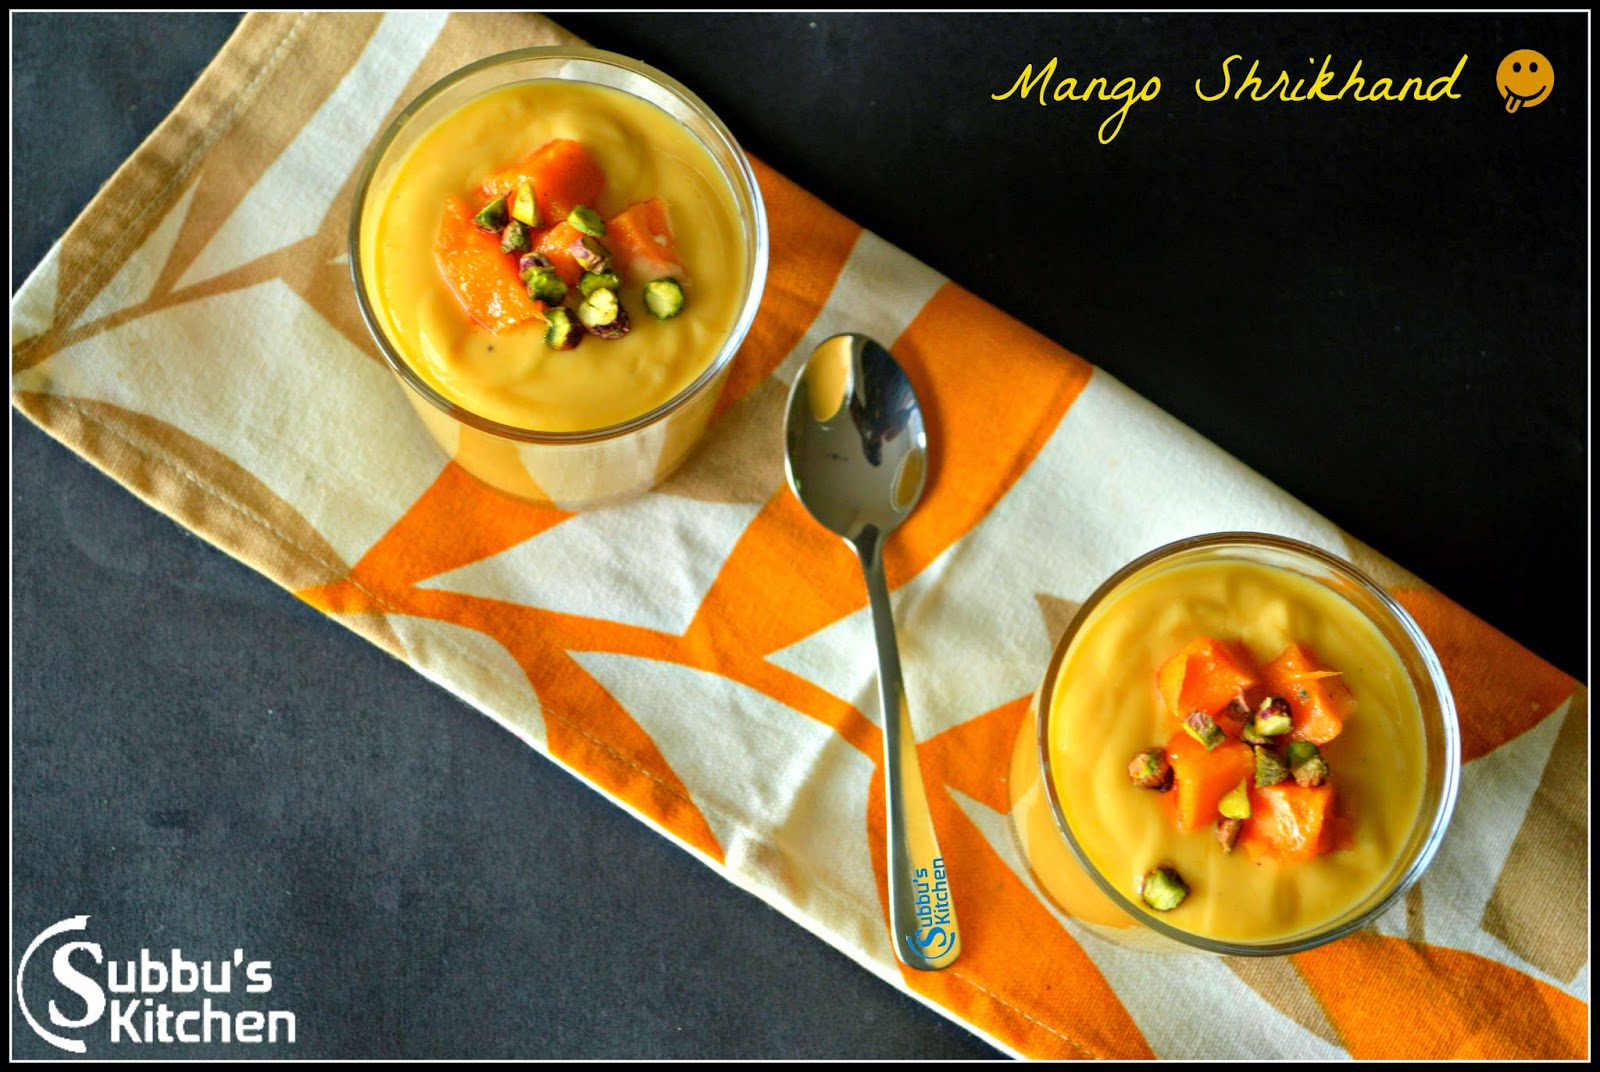 Mango Shrikhand Recipe, Amrakhand Recipe, Aamkhand Recipe, How to cook Amrakhand, How to prepare Mango Shrikhand, Recipe for Aamkhand